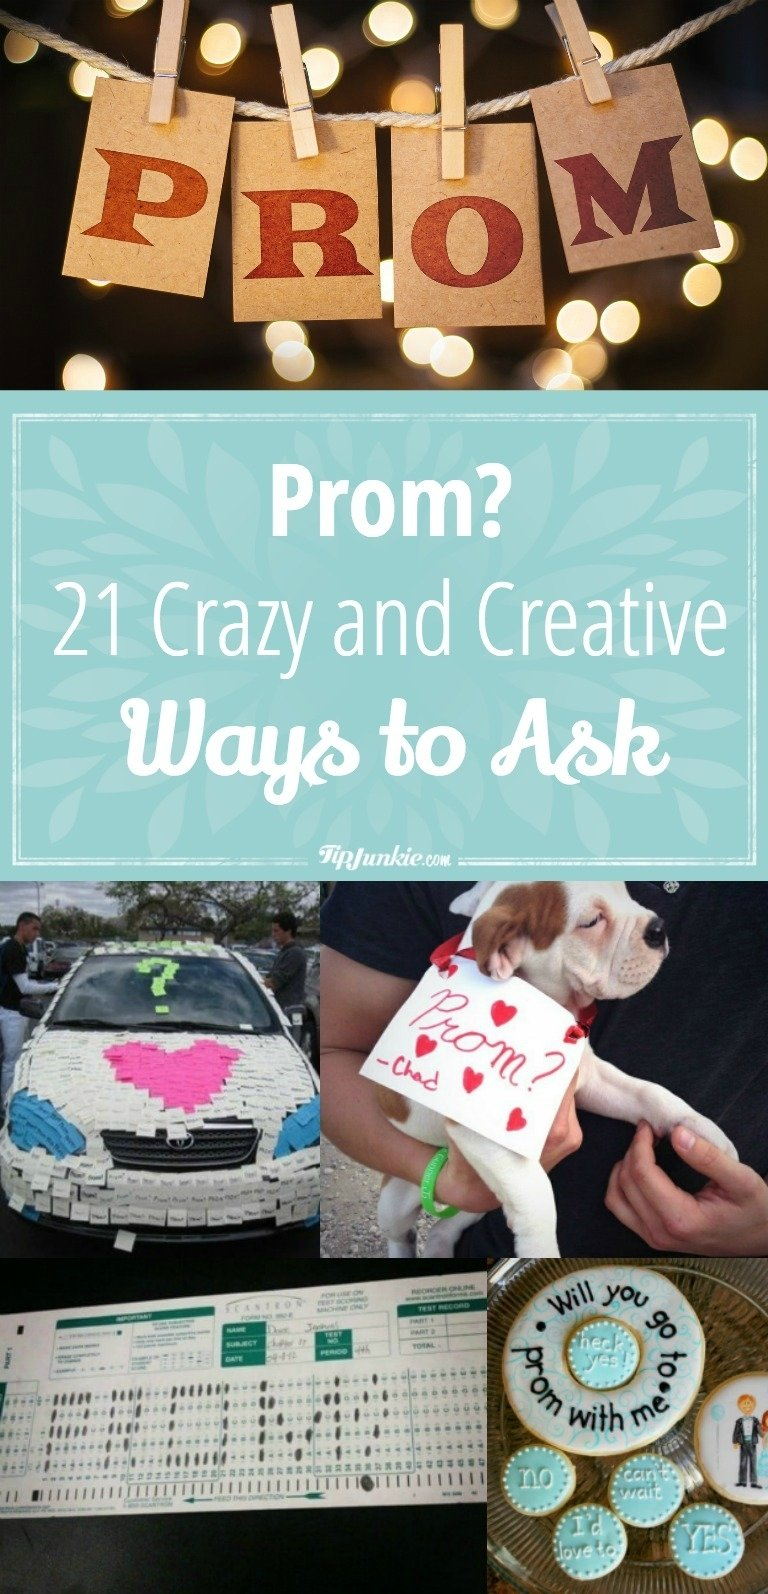 10 Nice Prom Ideas To Ask A Girl prom 21 crazy and creative ways to ask tip junkie 4 2020